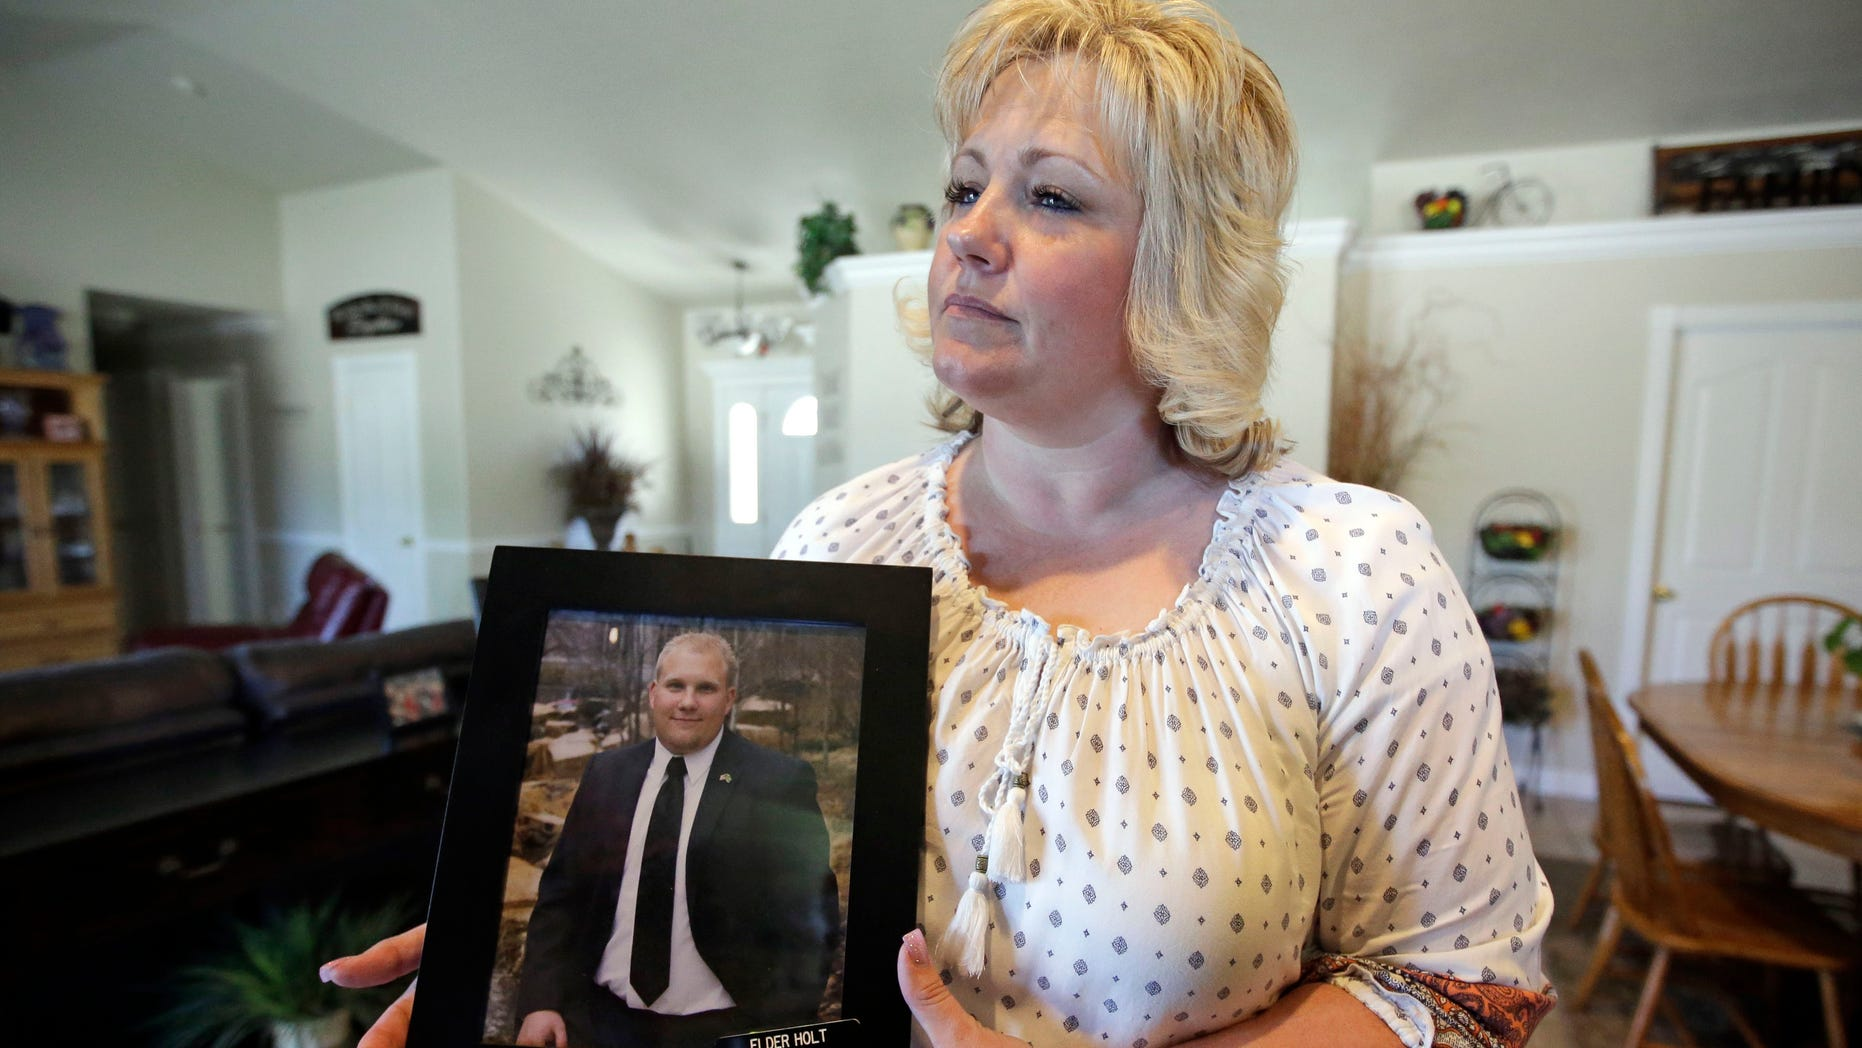 Laurie Holt holds a photograph of her son Josh Holt at her home, in Riverton, Utah, on July 13, 2016.